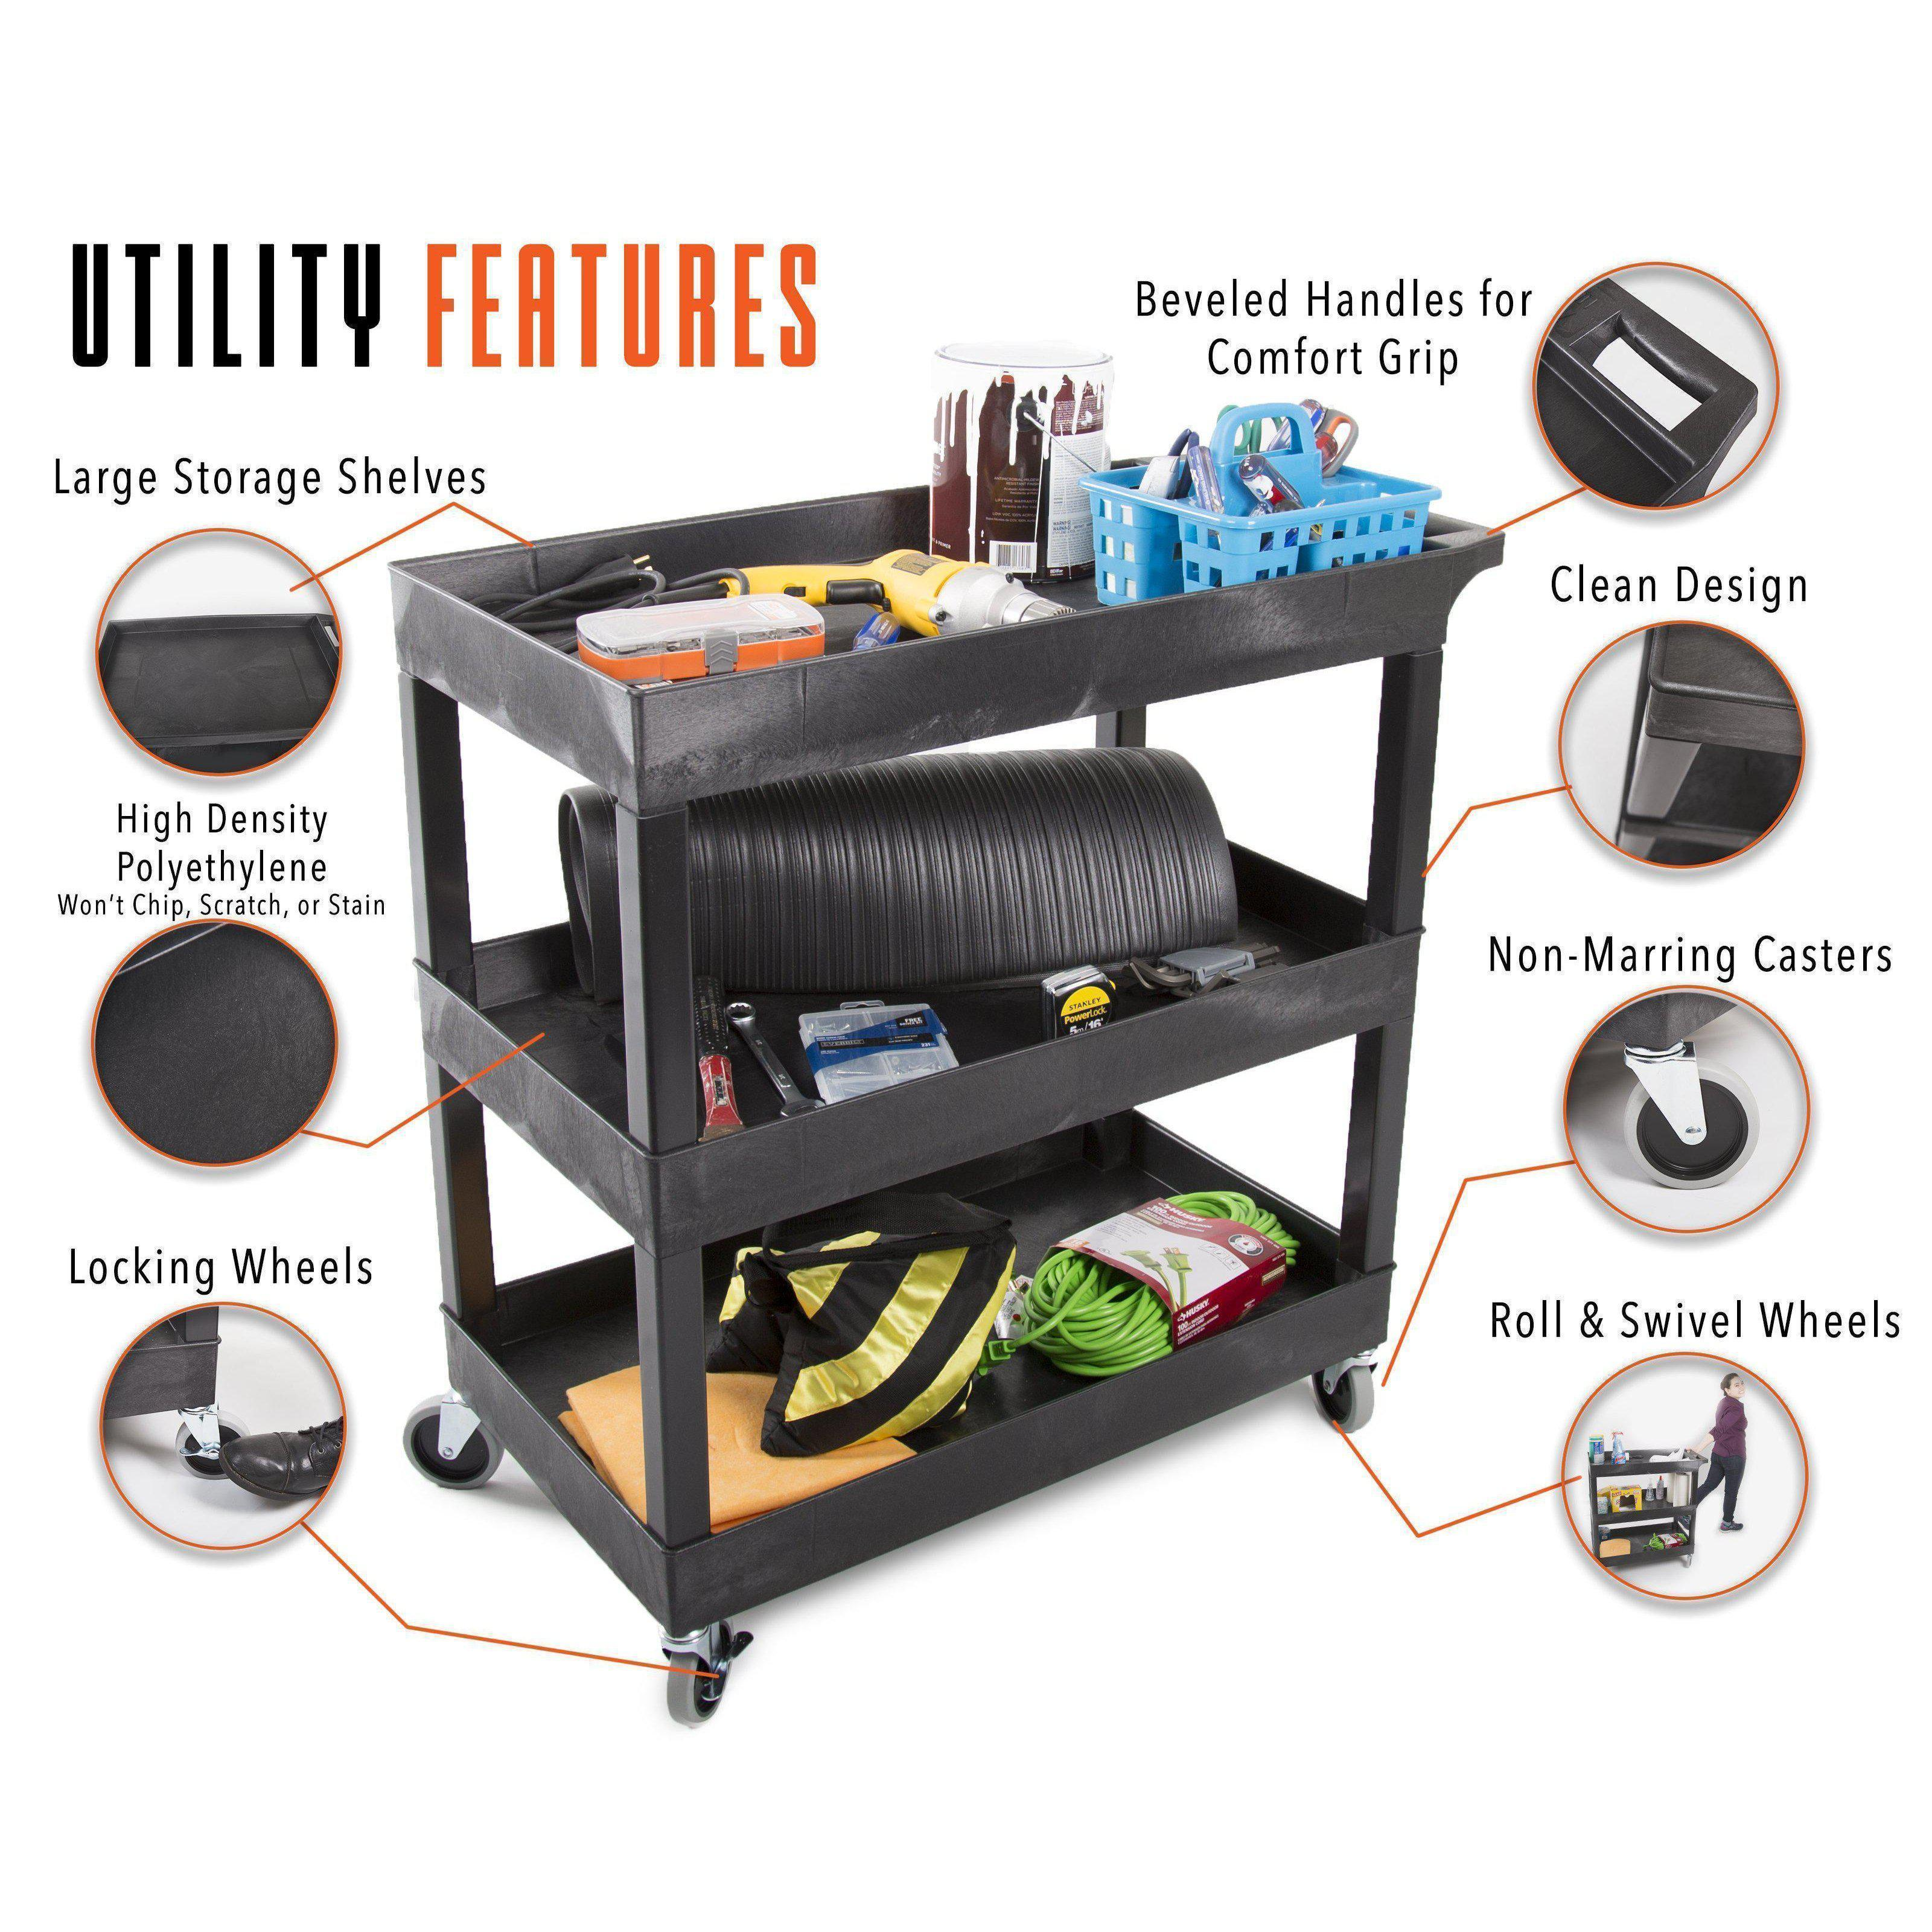 This utility cart has so many heavy duty features, including deep storage shelves, an ergonomic push handle, locking wheels, and high quality polyethylene molding